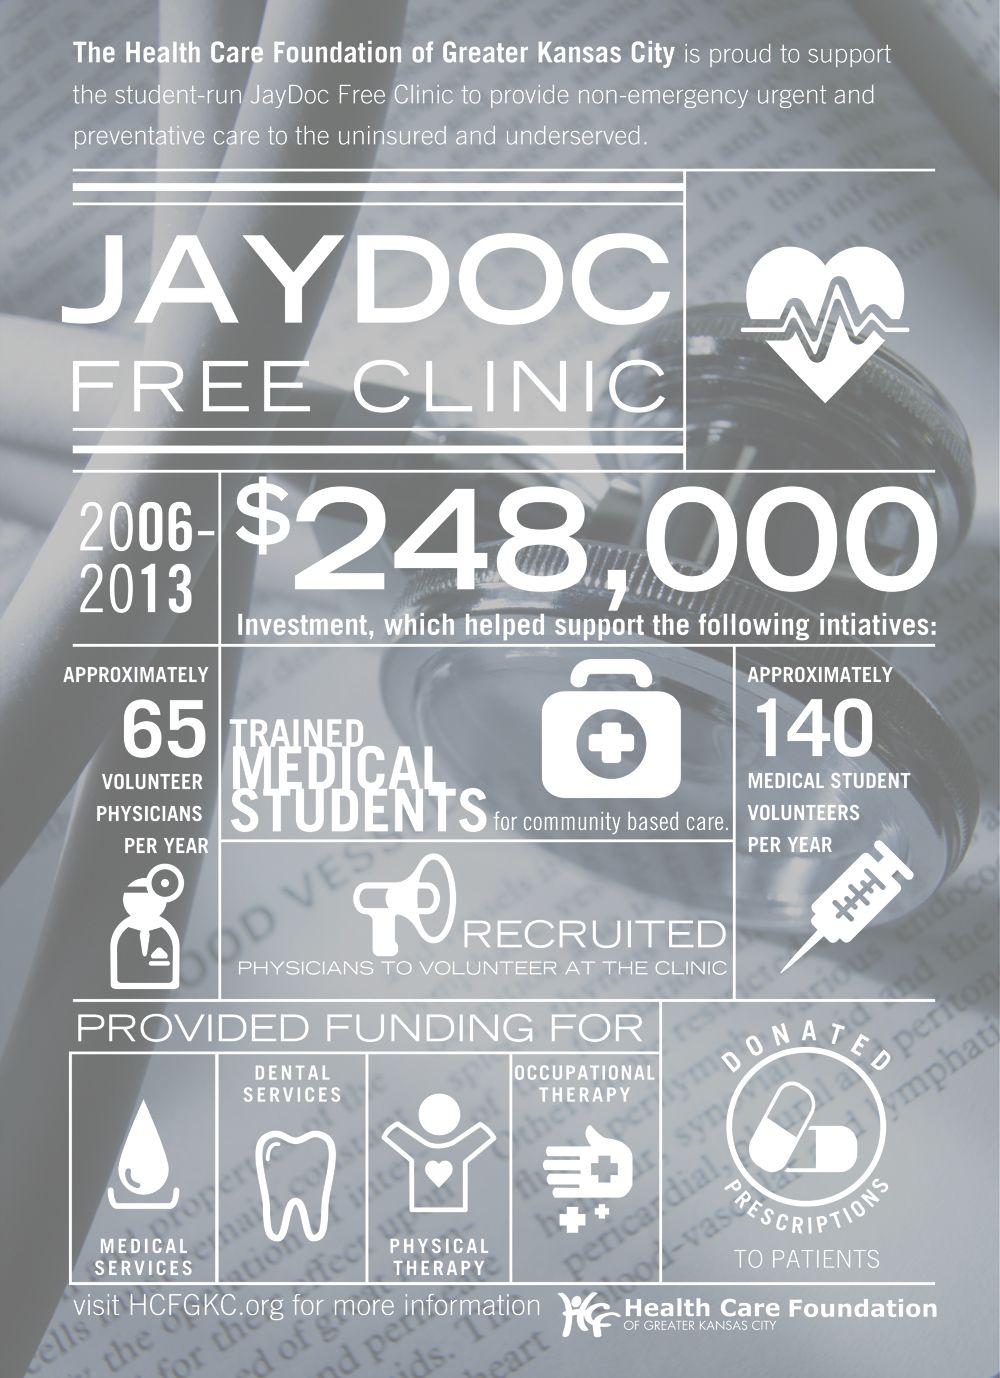 HCF is proud to support the studentrun JayDoc Free Clinic